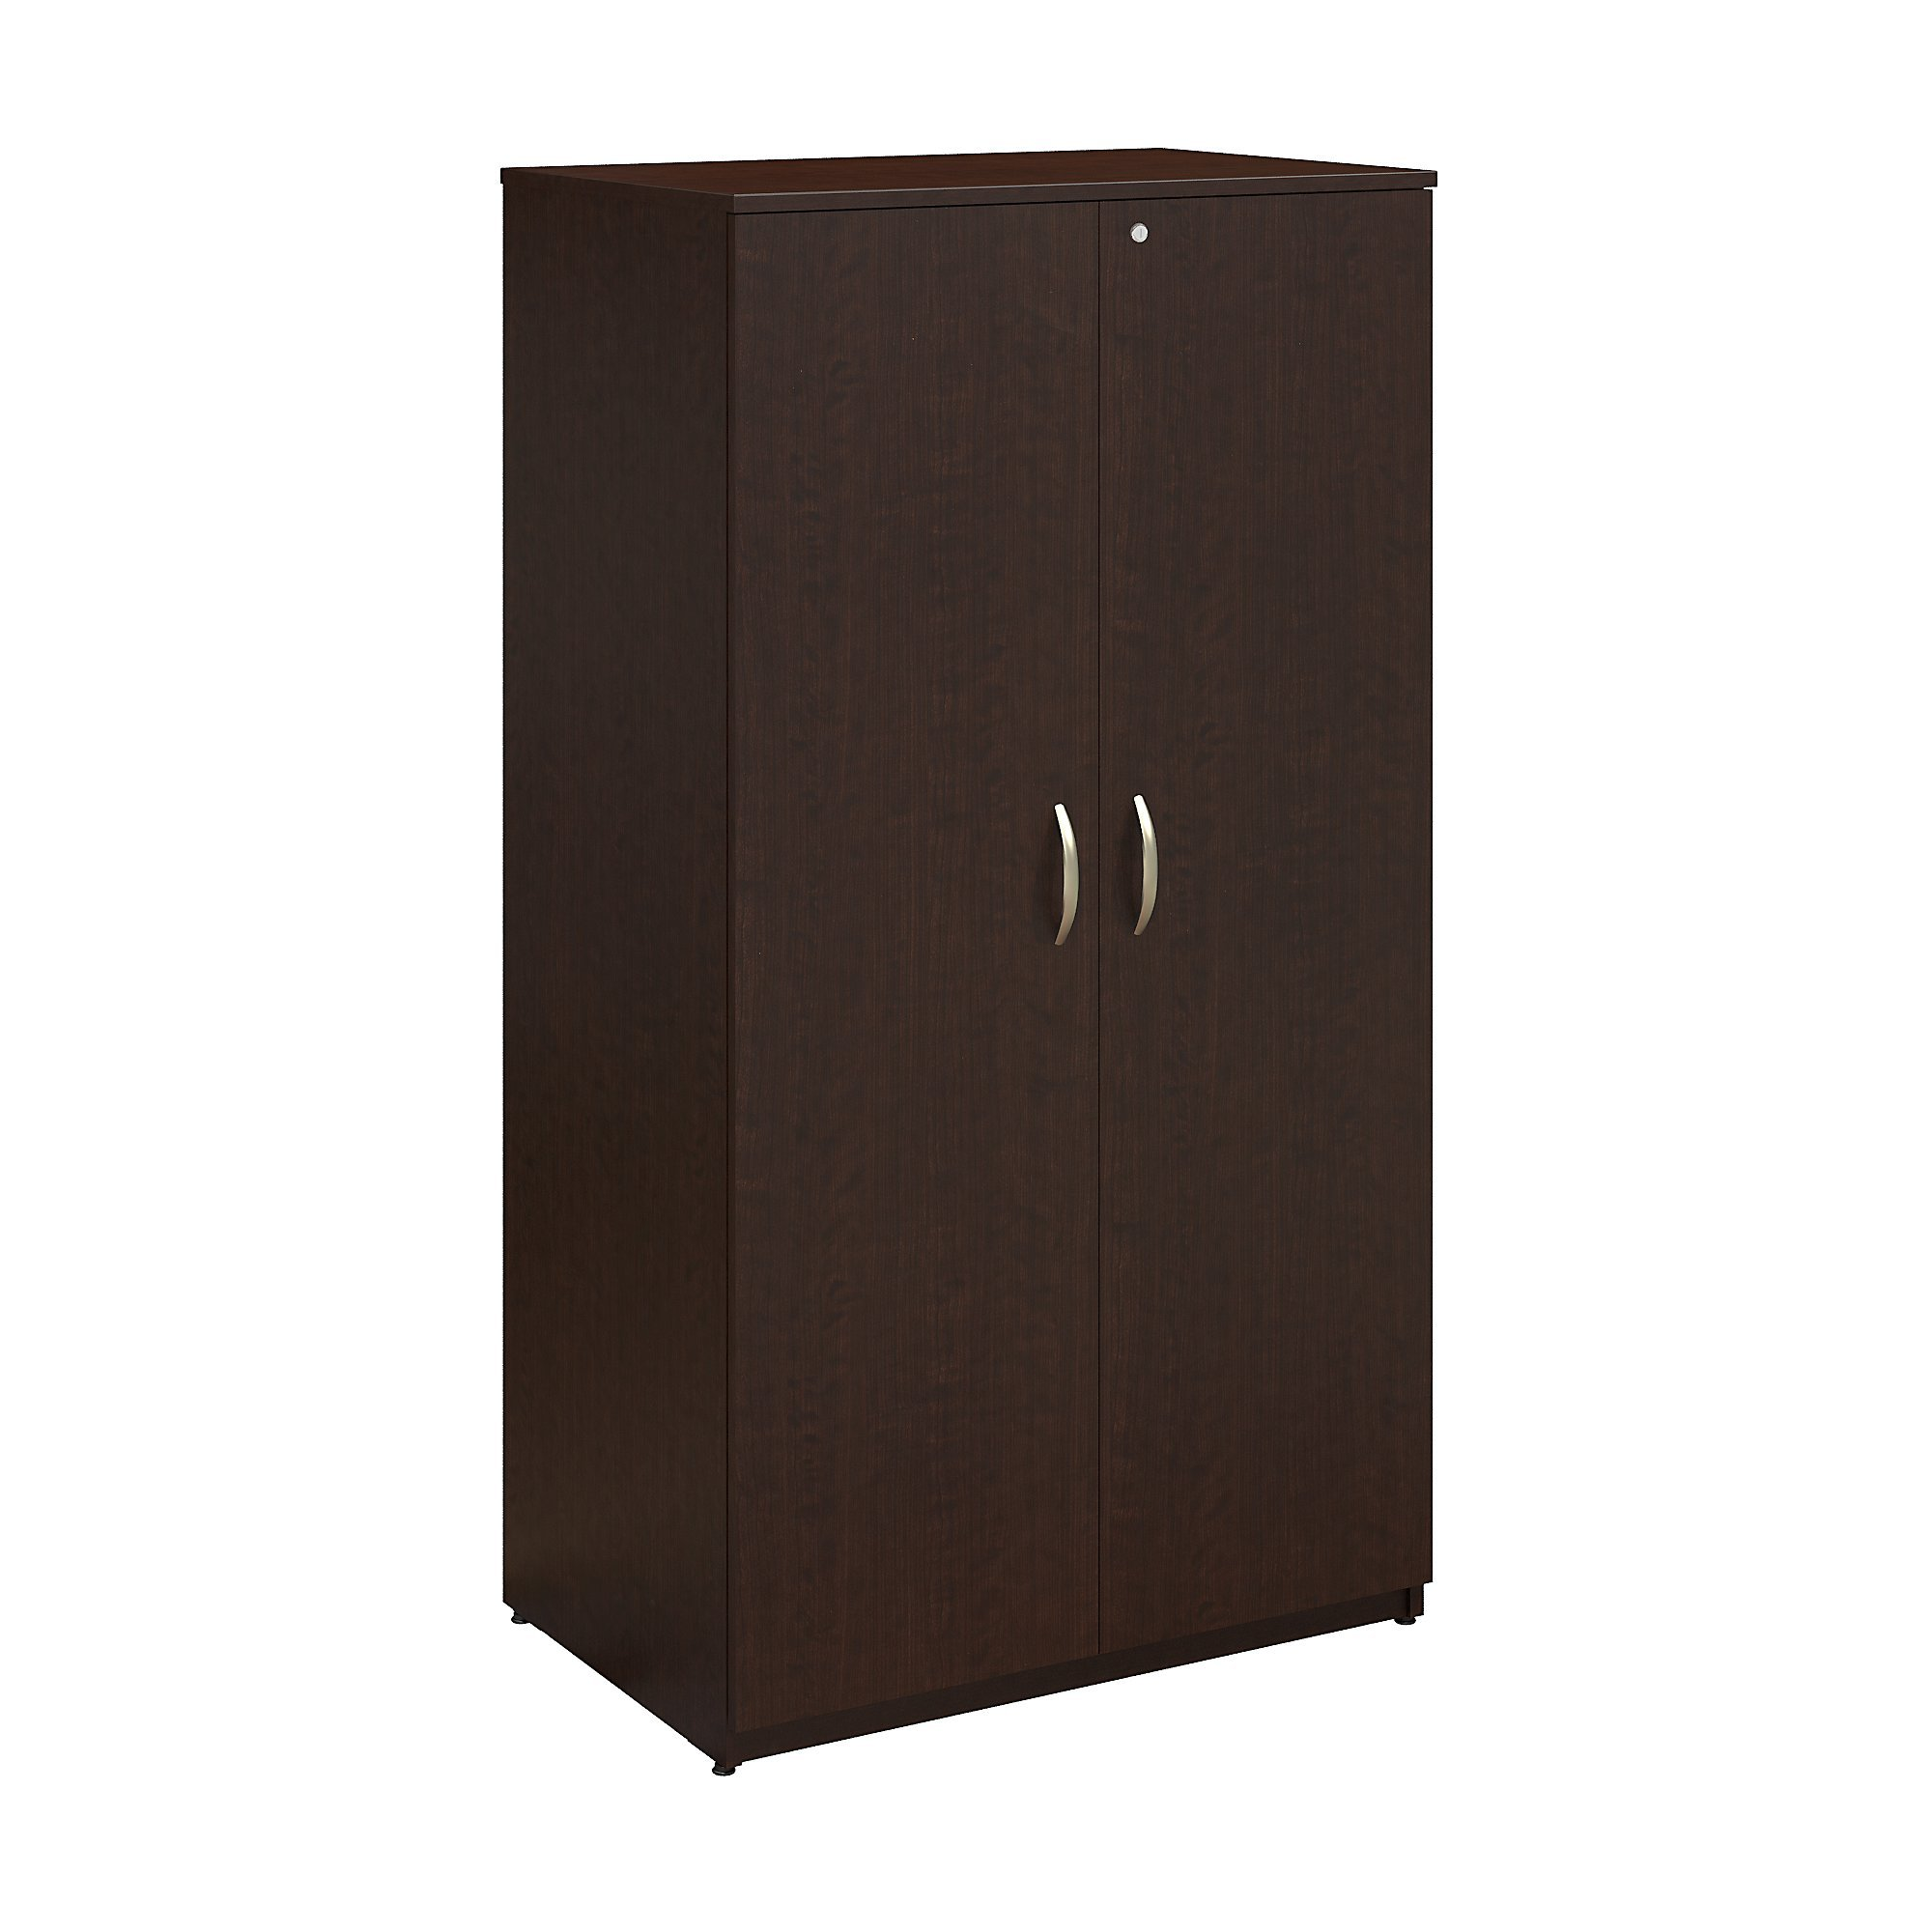 Bush Business Furniture Series C Elite 36W Storage Wardrobe Tower in Mocha Cherry